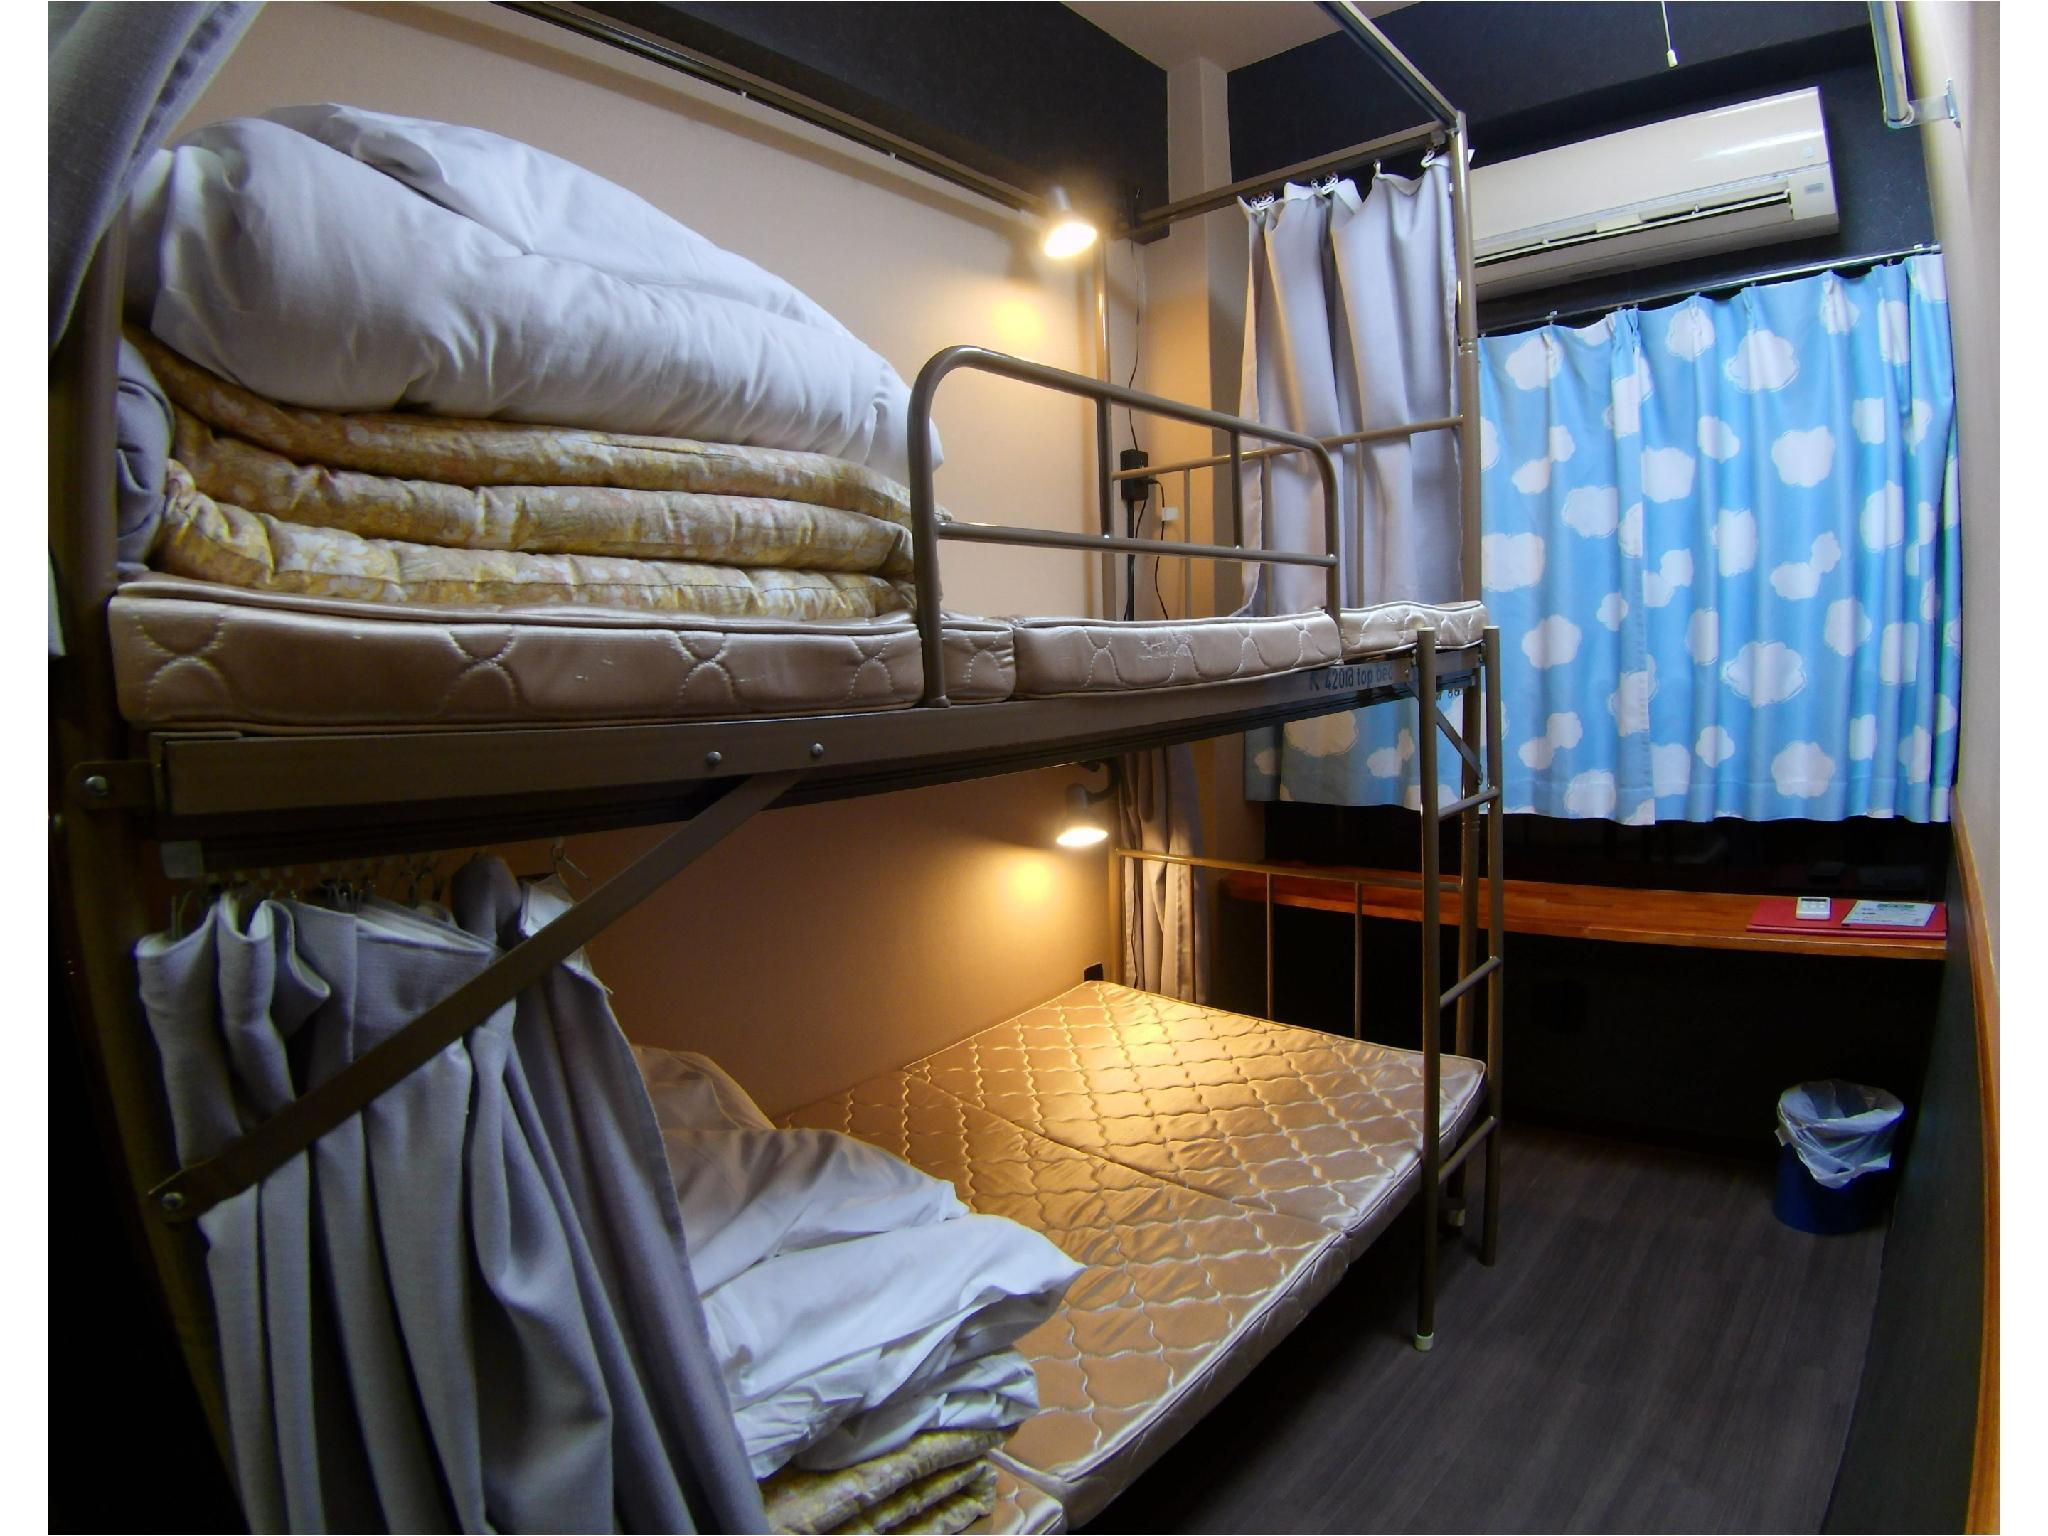 뱅크 트윈룸 (Twin Room (Bunk Beds))